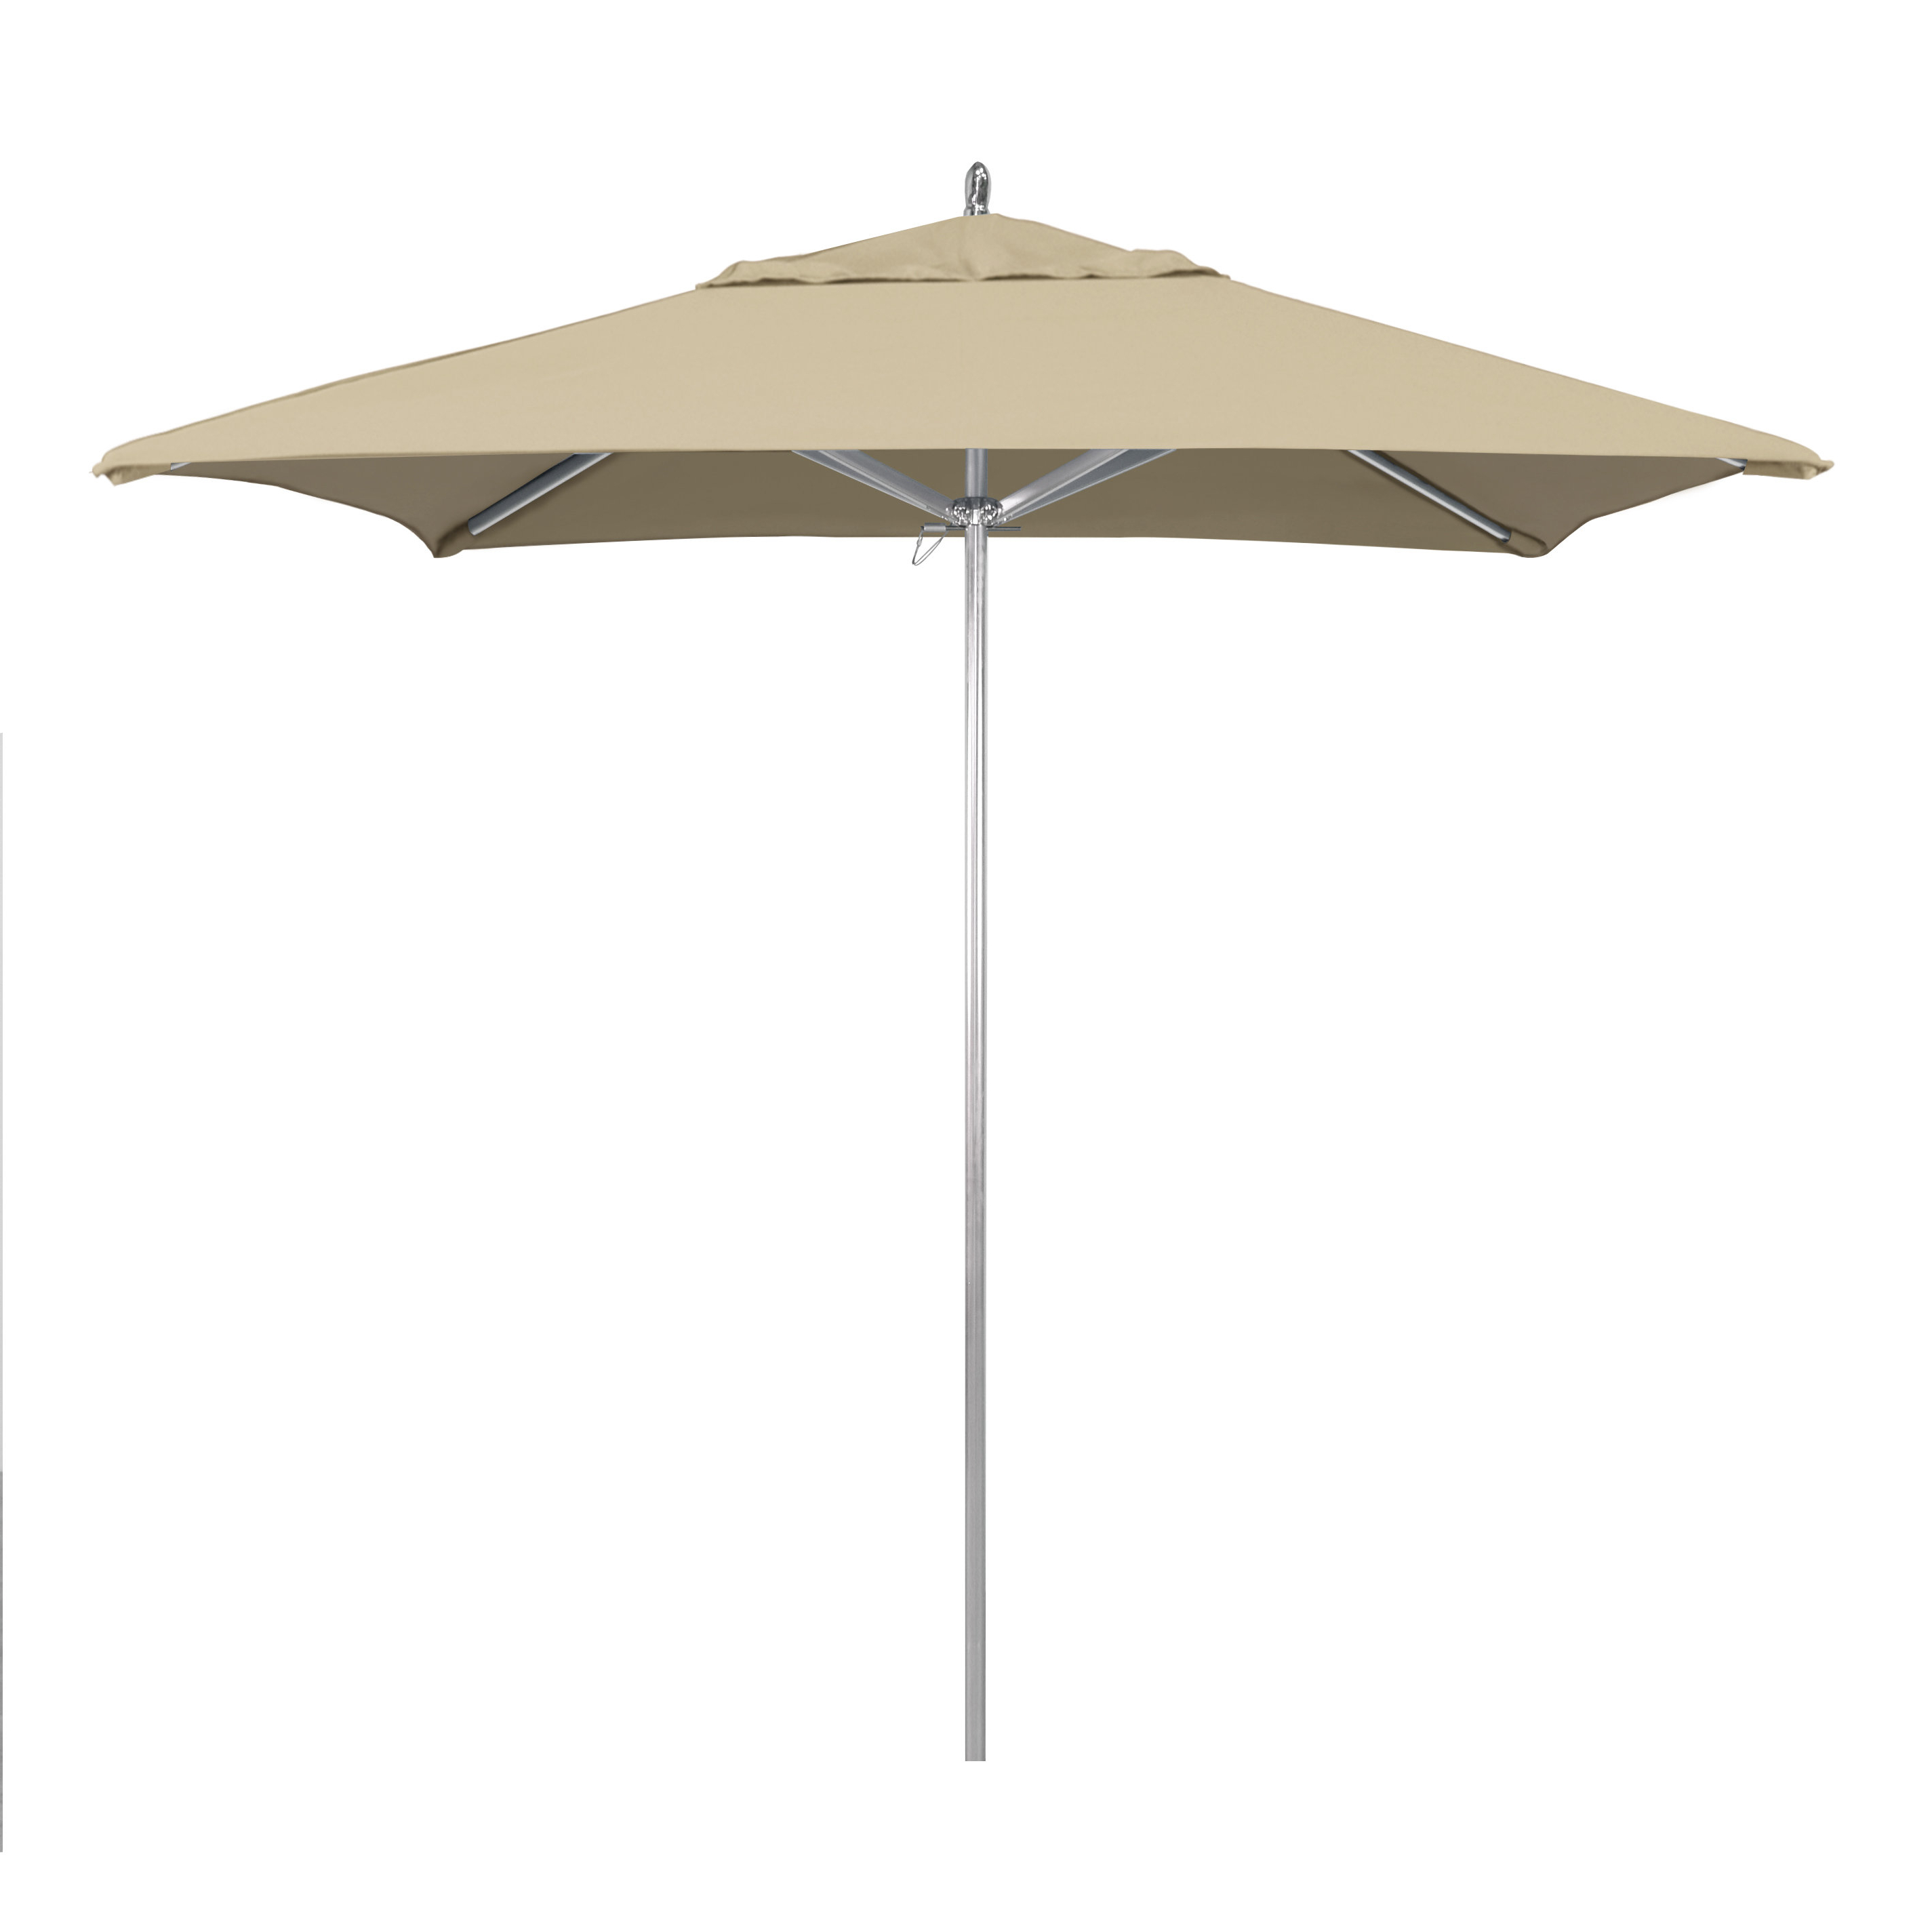 Popular Rodeo Series 11' Market Sunbrella Umbrella Throughout Wiebe Market Sunbrella Umbrellas (View 11 of 20)